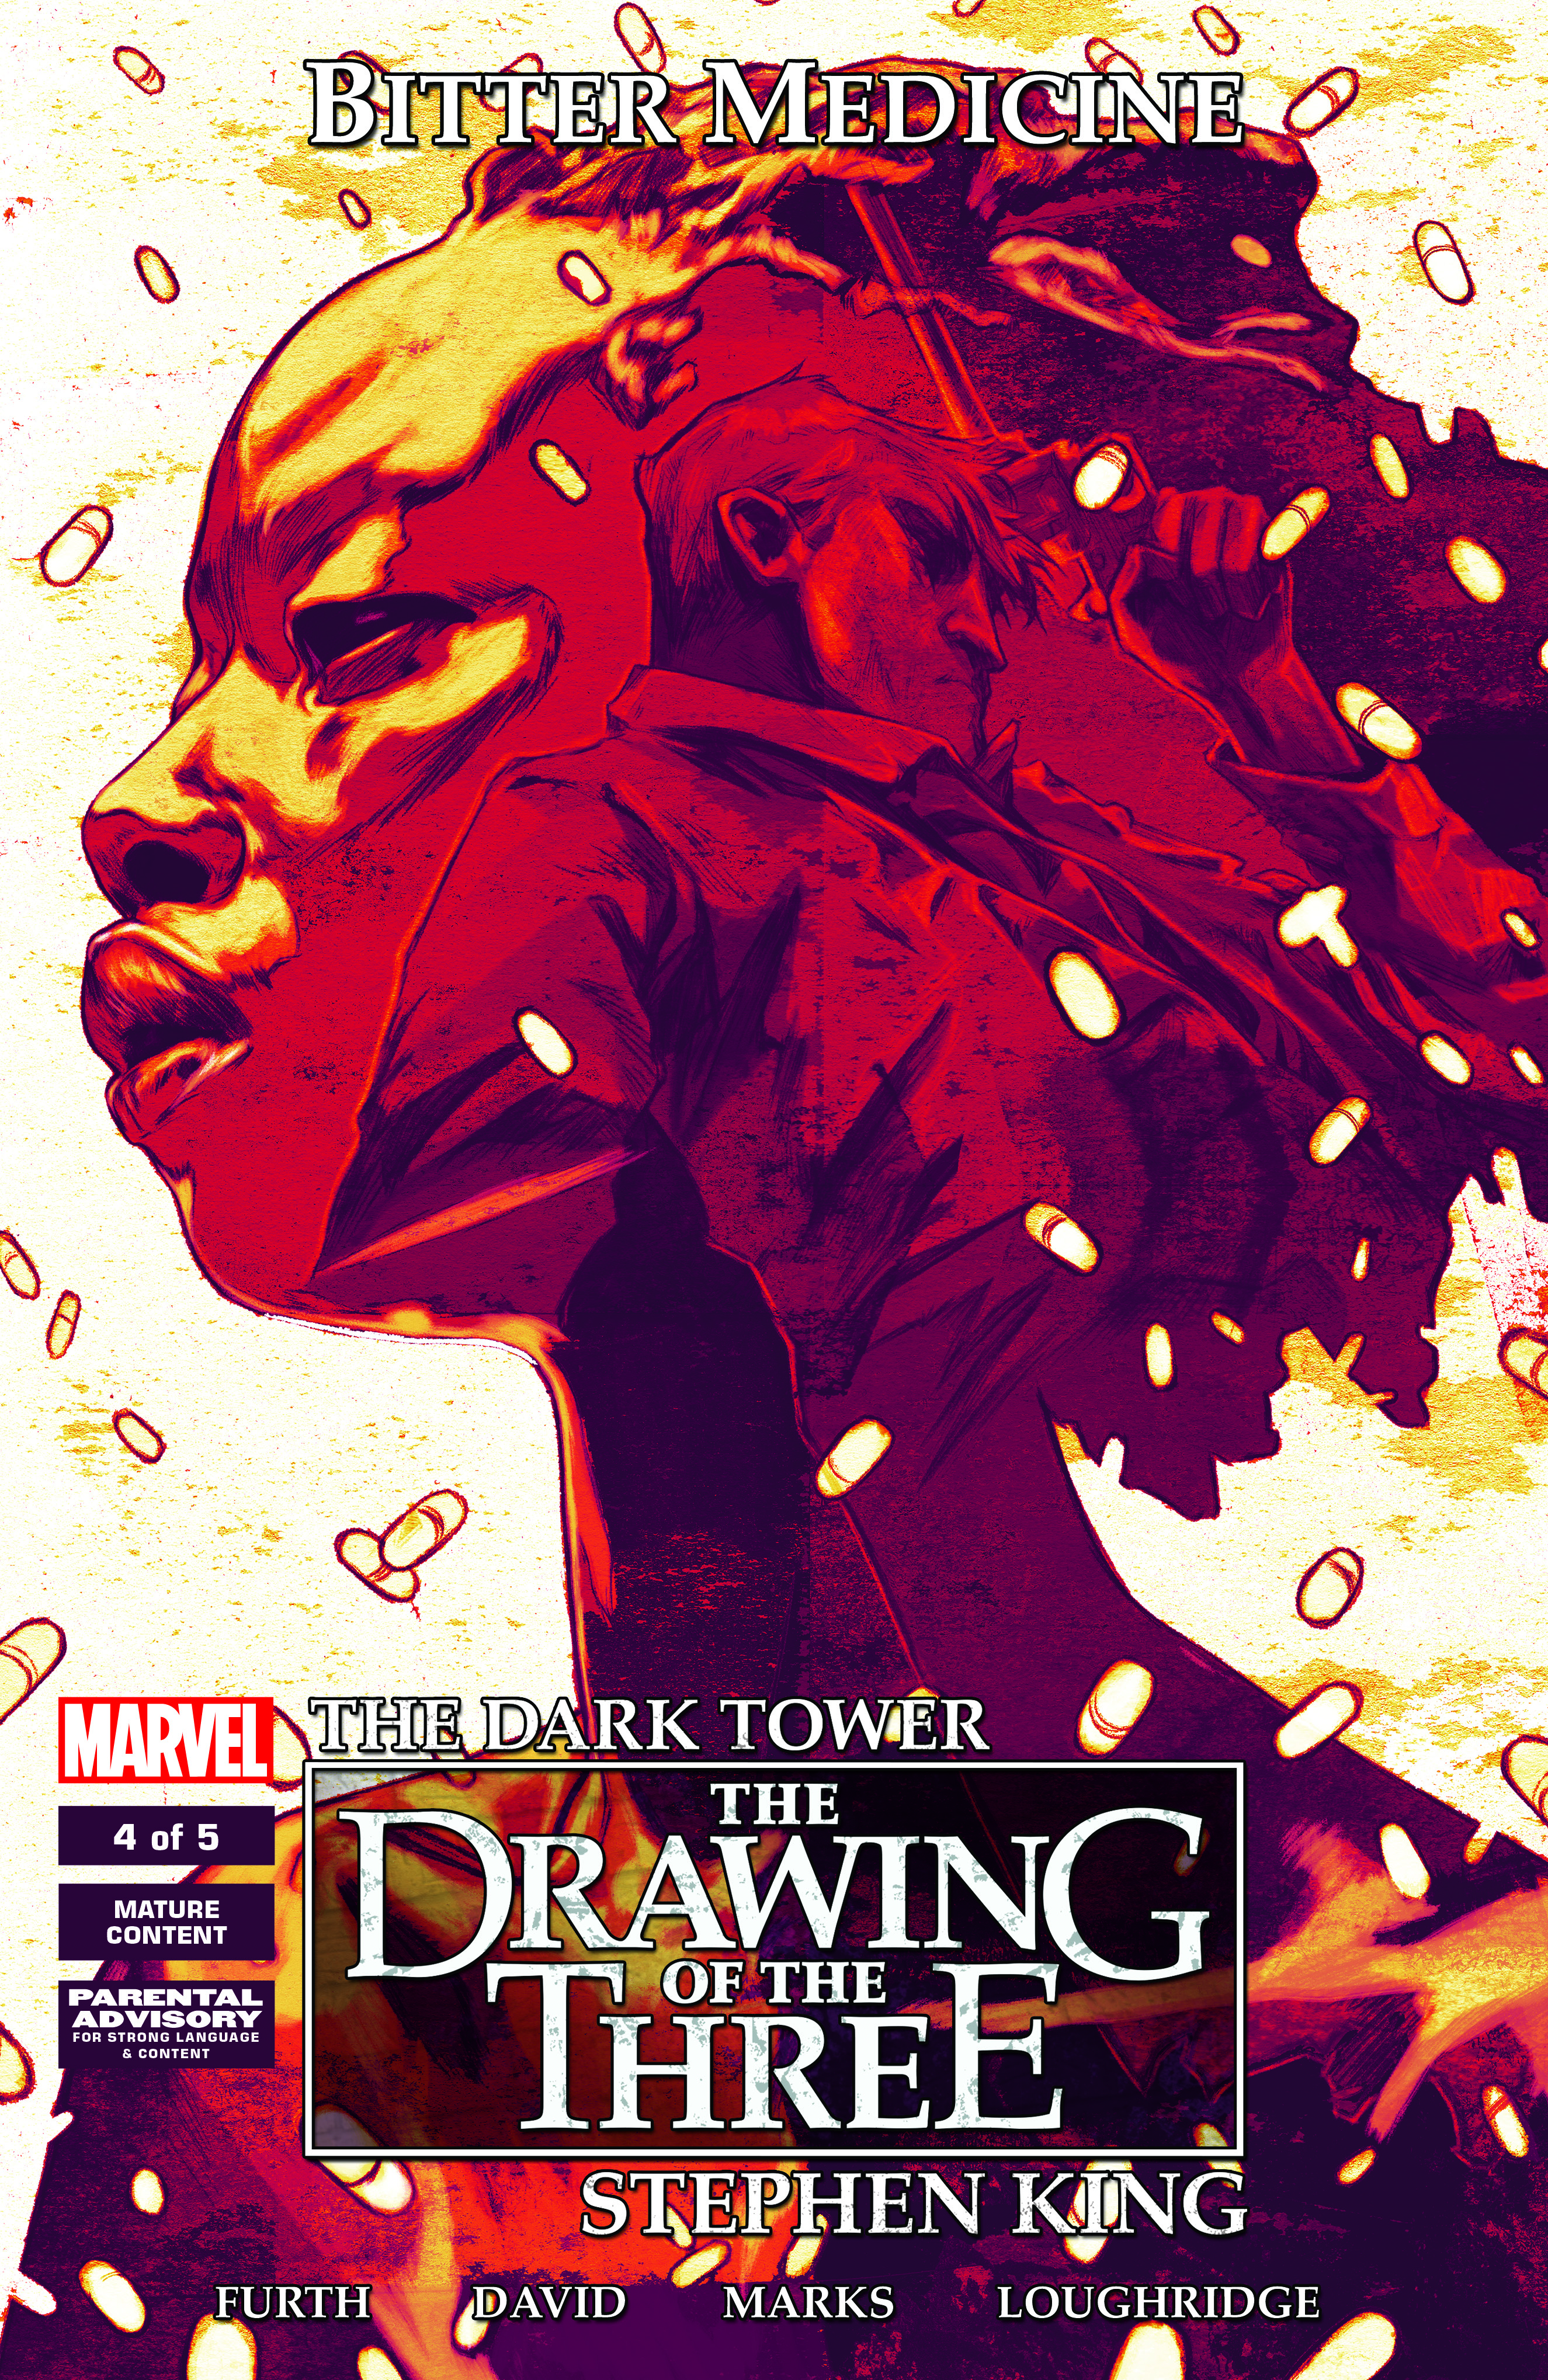 Dark Tower: The Drawing of the Three - Bitter Medicine (2016) #4